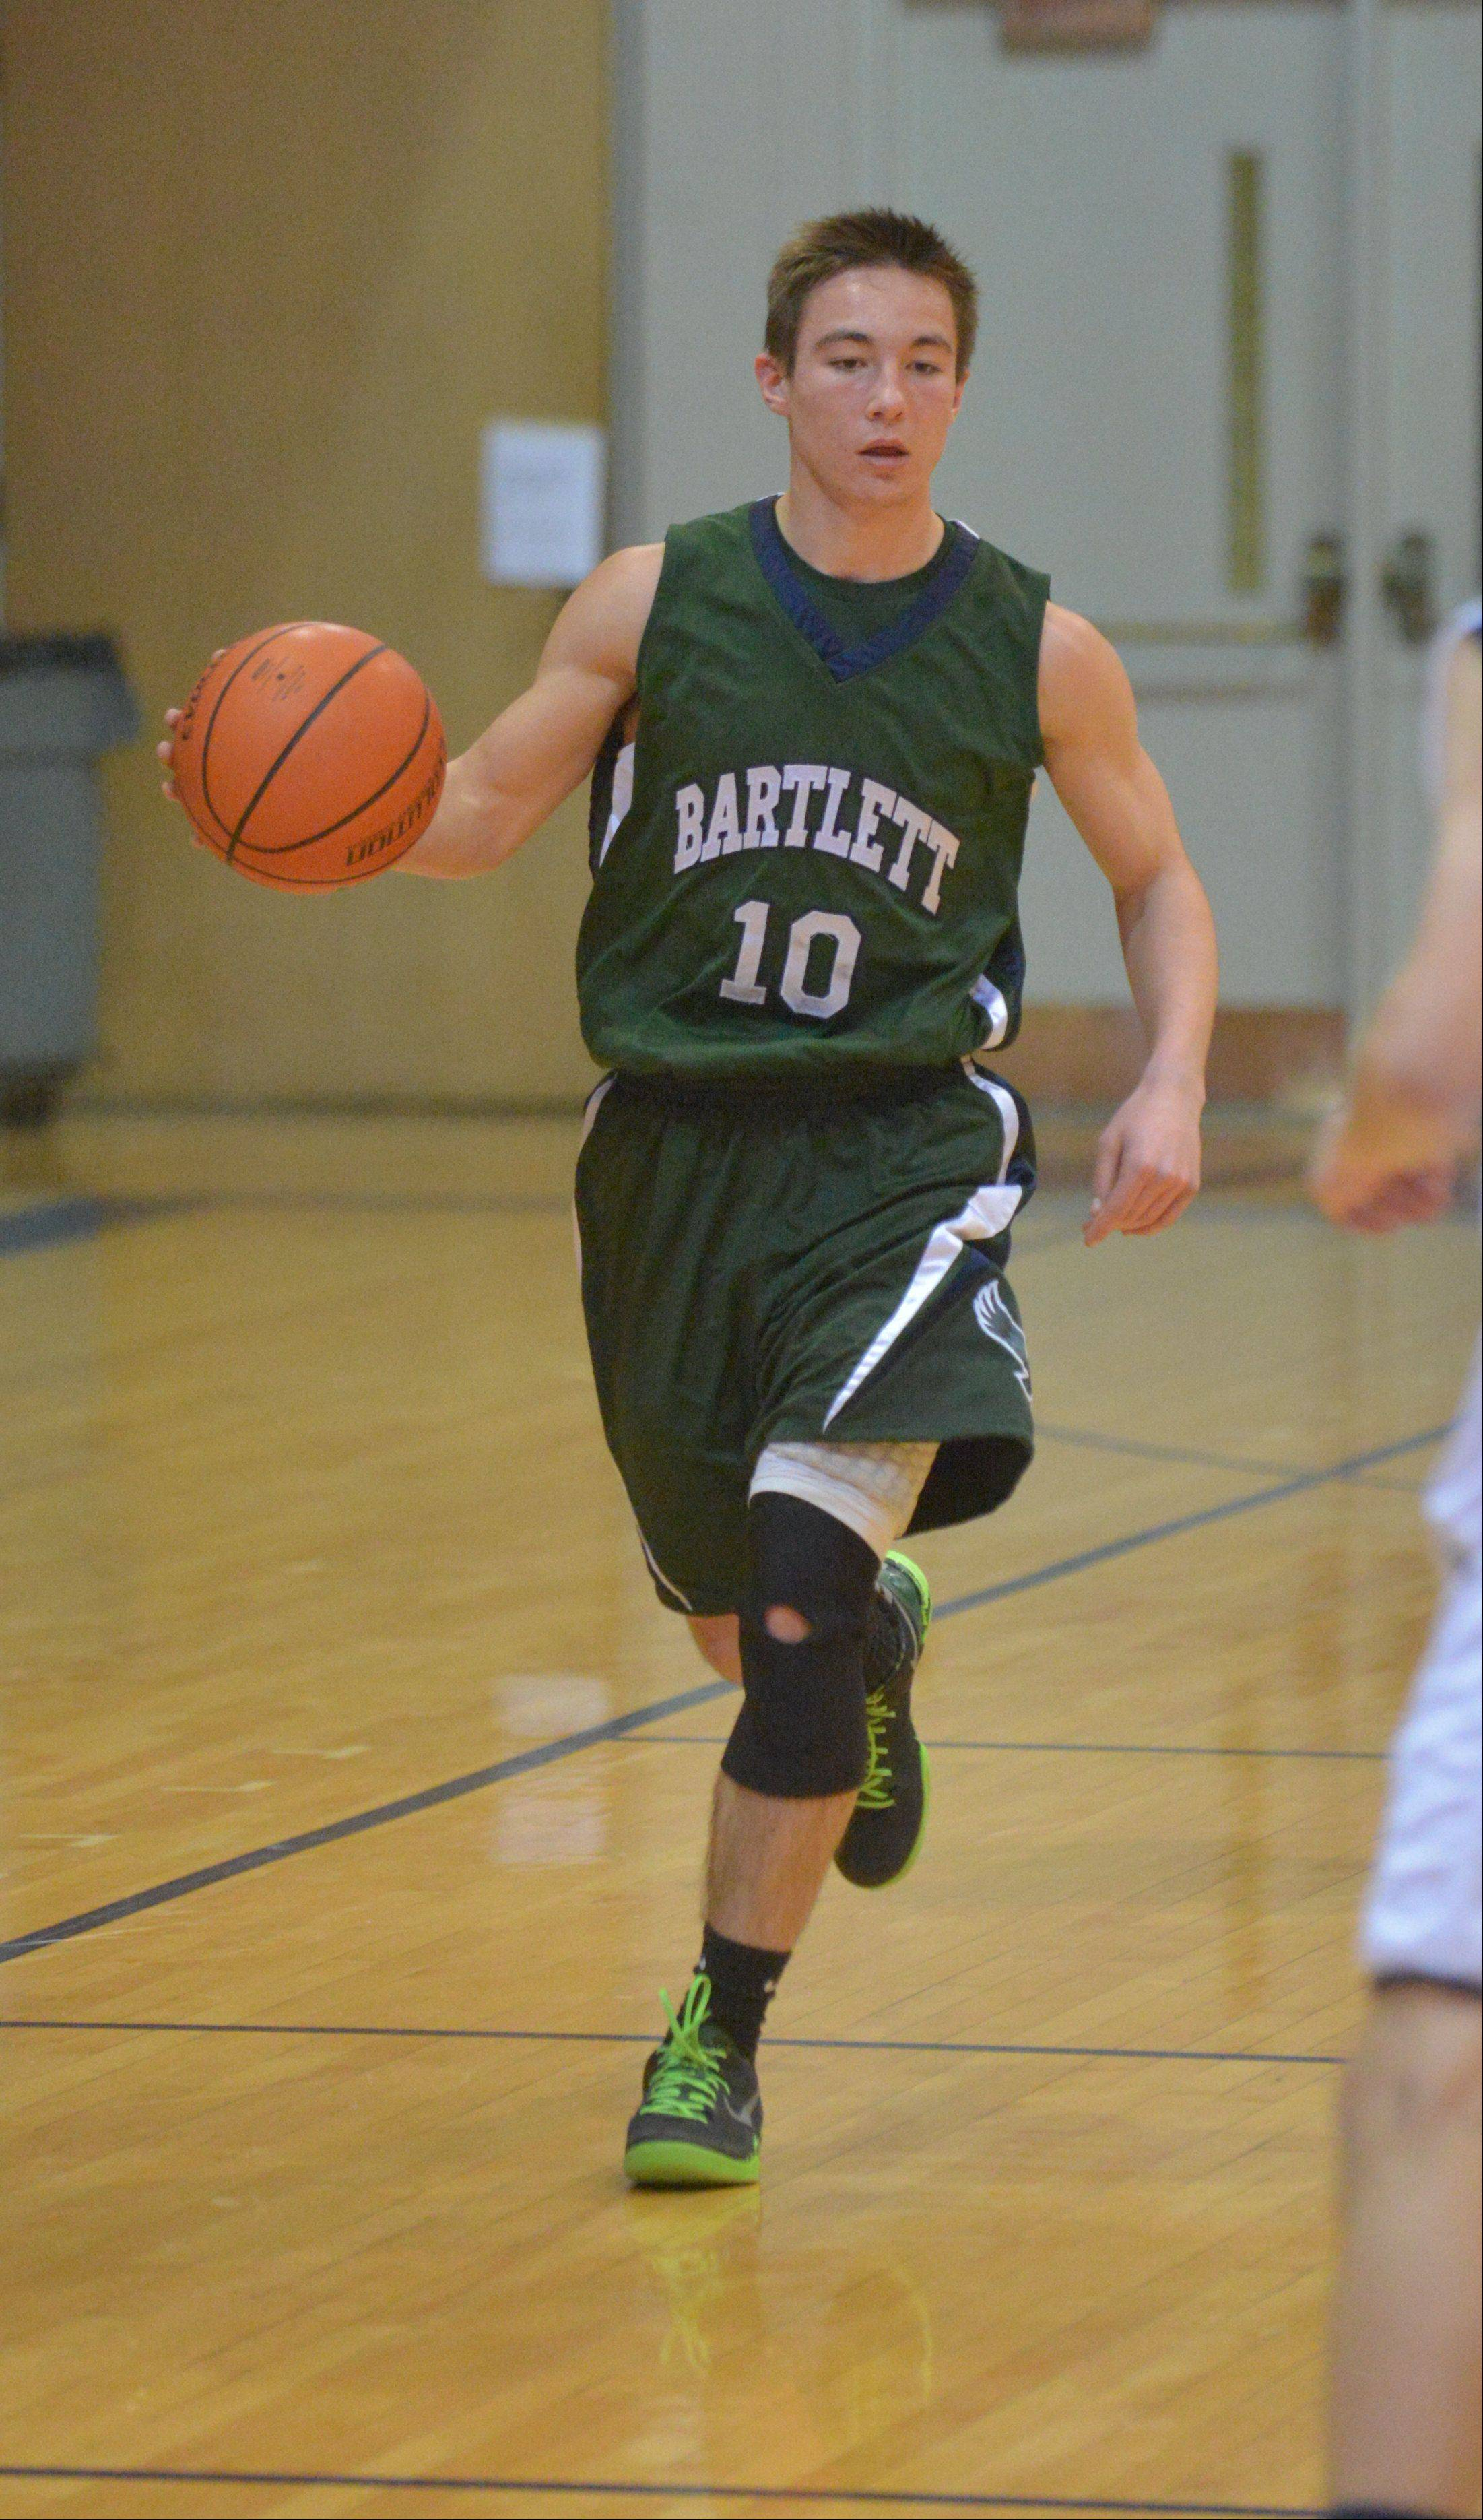 Photos from the West Chicago vs. Bartlett boy basketball game on Tuesday, January 21.